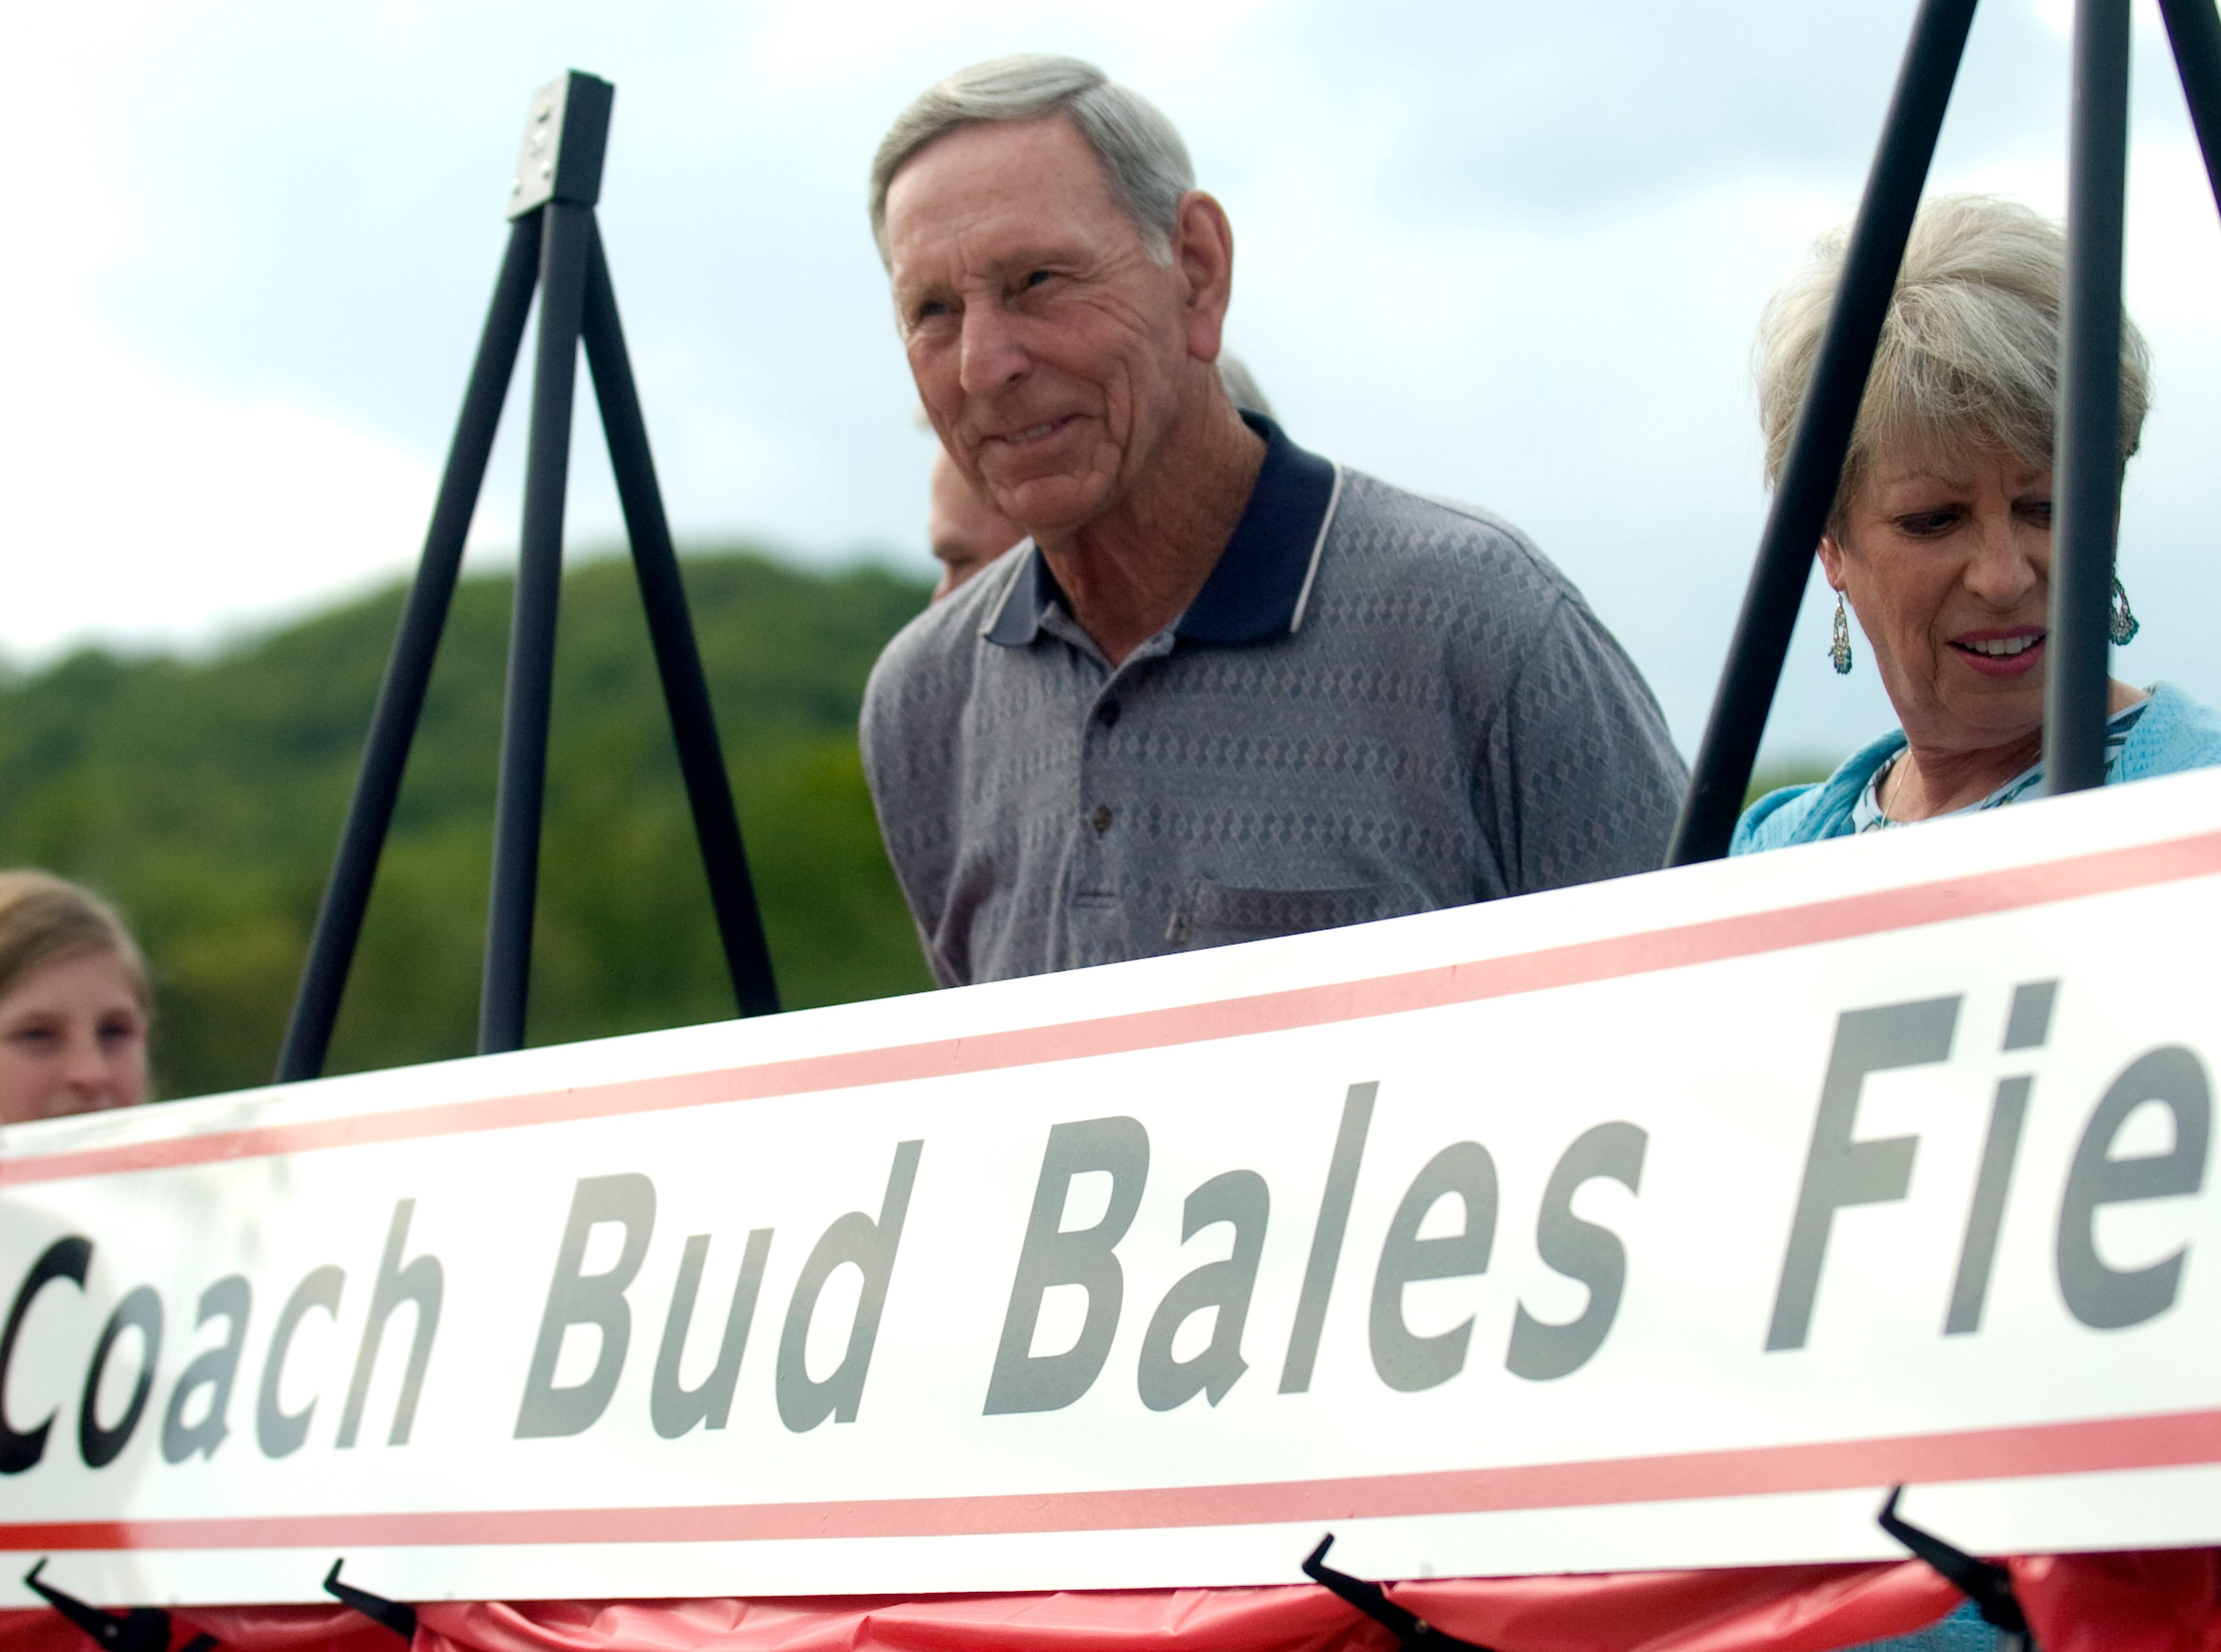 Bud Bales smiles as he stands behind the sign that will decorate a baseball field at Tommy Schumpert Park in his honor. Bales served as Central's head baseball coach fro 1974 to 2000. Central High School and Halls square off in baseball at Tommy Schumpert Park on Central's new Bud Bales Field on Wednesday, Apr. 21, 2010.